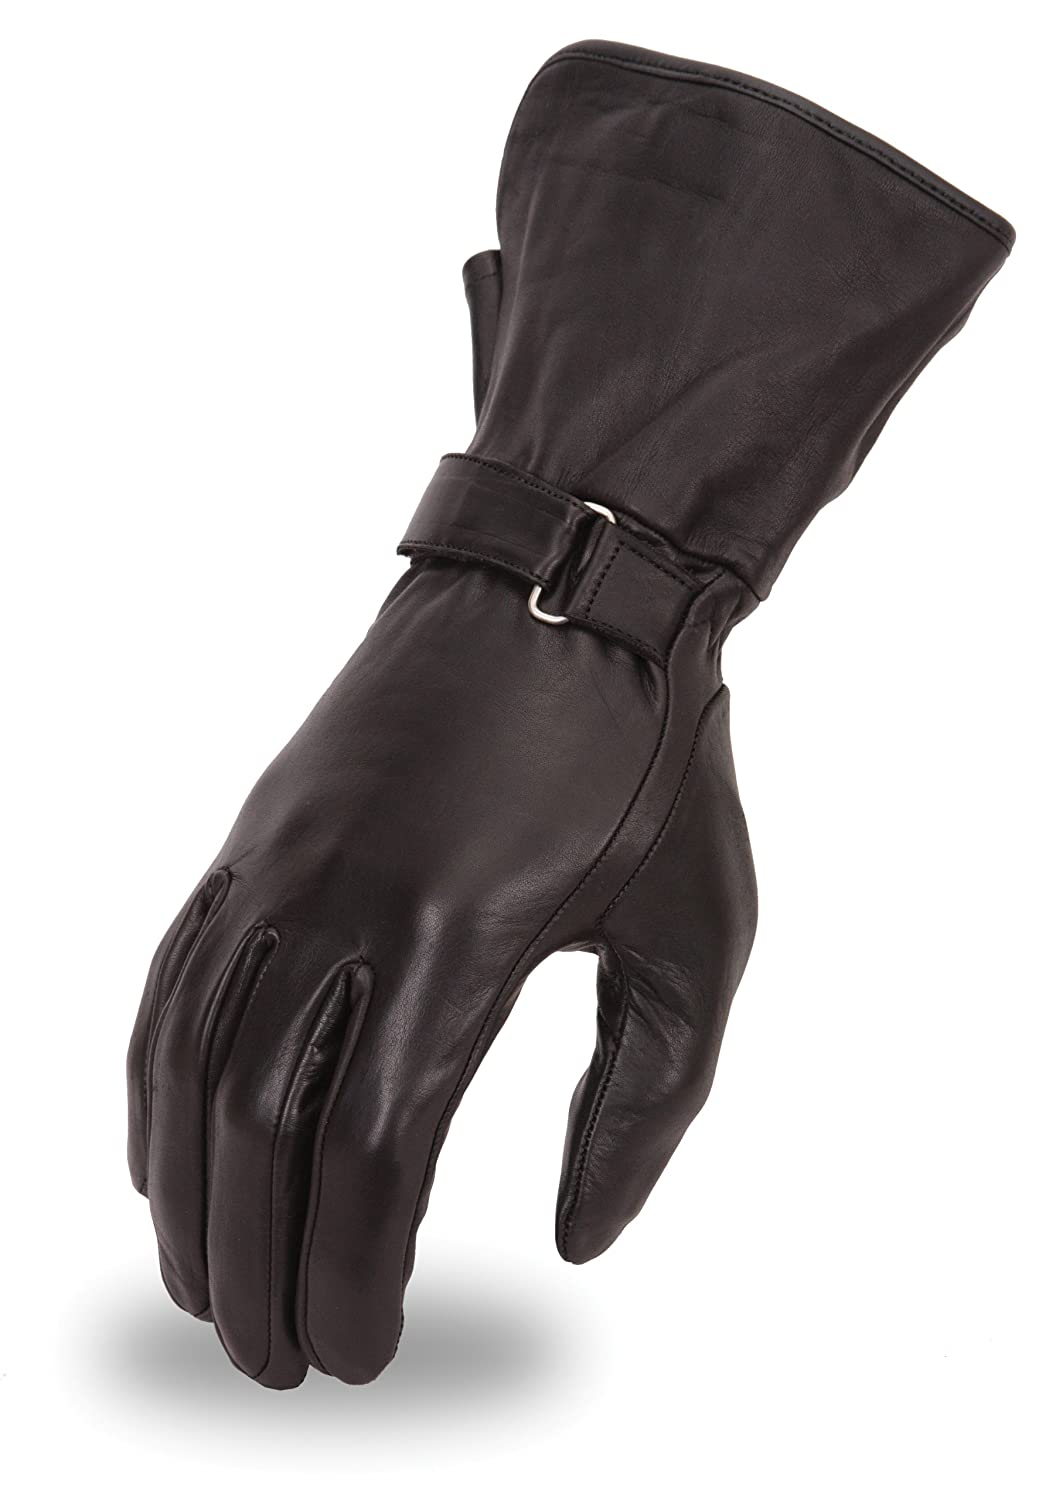 Leather gauntlet driving gloves - Amazon Com First Manufacturing Women S Light Weight Gauntlet Gloves Black Large Automotive